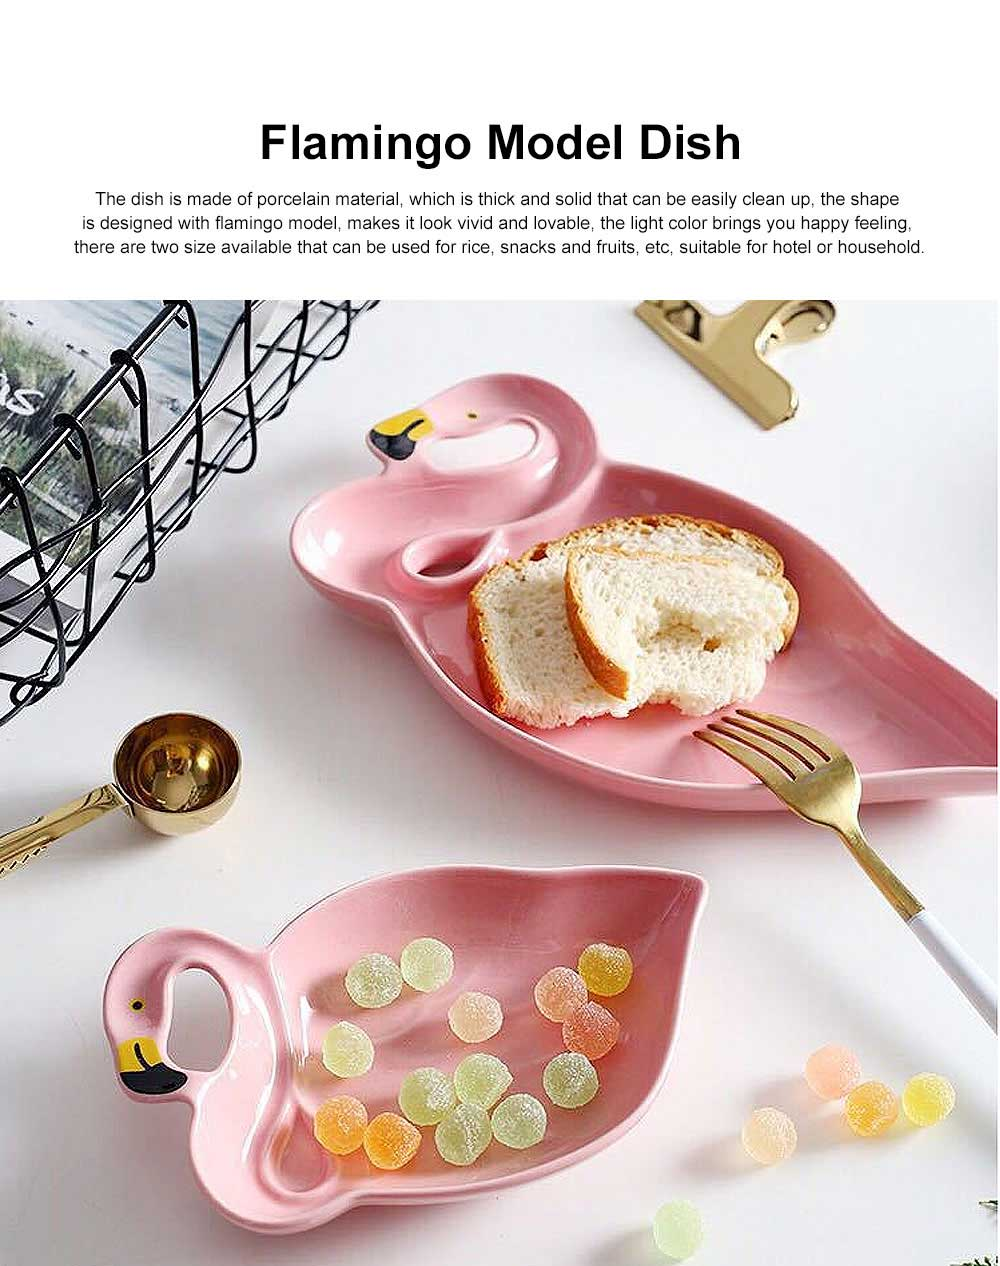 Porcelain Plate Flamingo Shape Hollow-ware for Rice Snacks Elegant Tray Irregular Dish 0